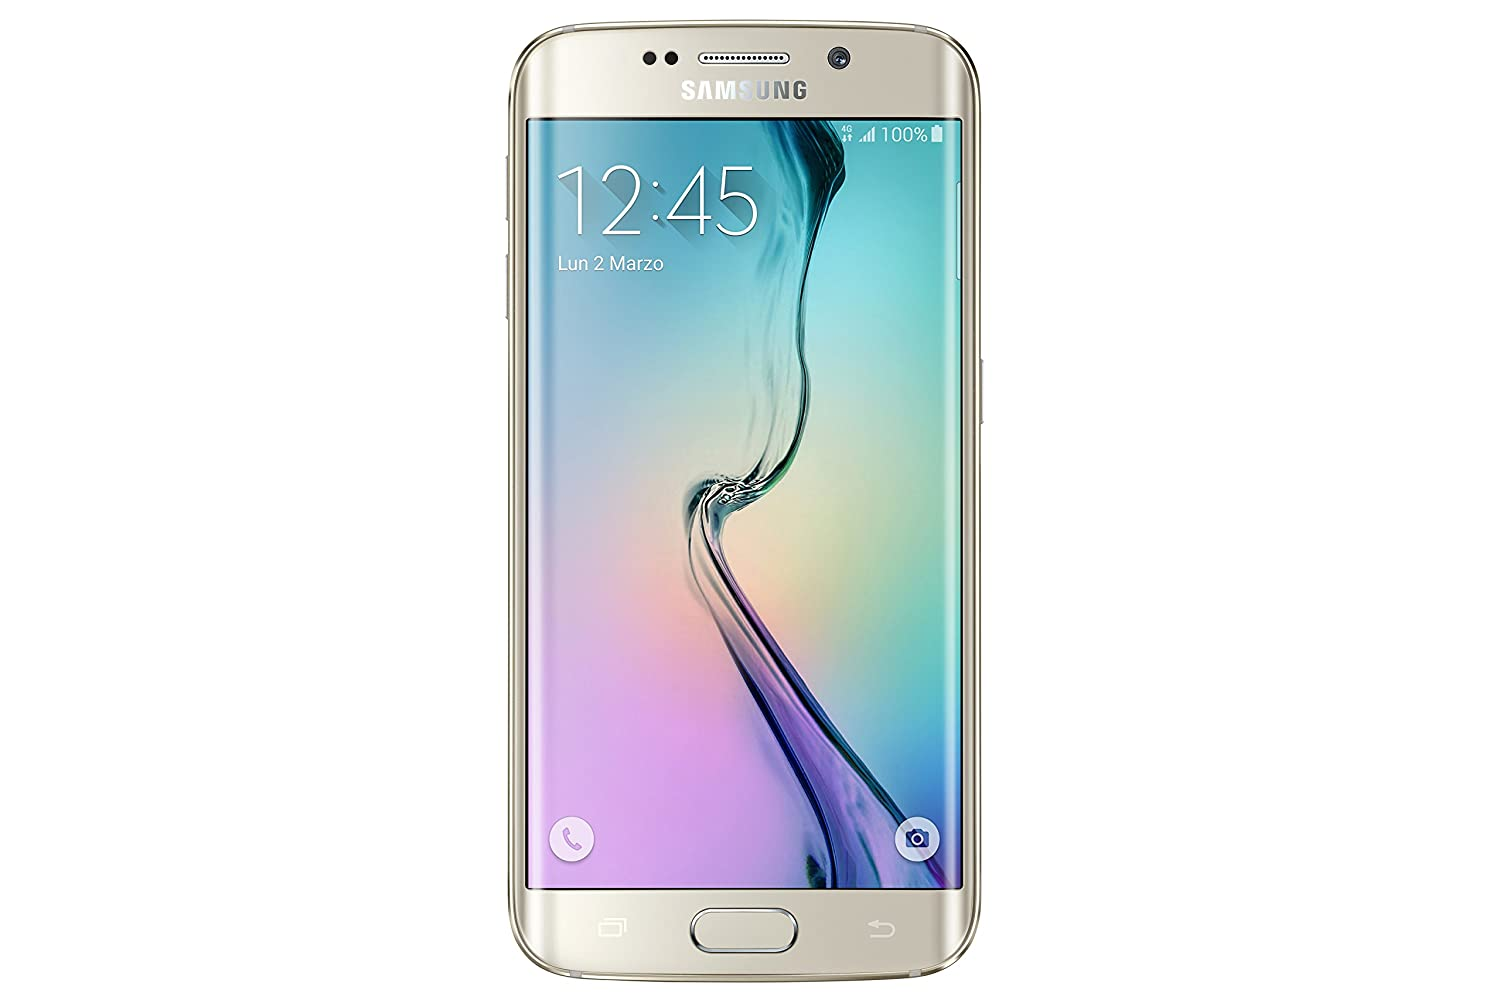 samsung galaxy s6 edge g925 32gb gold top gebraucht ebay. Black Bedroom Furniture Sets. Home Design Ideas